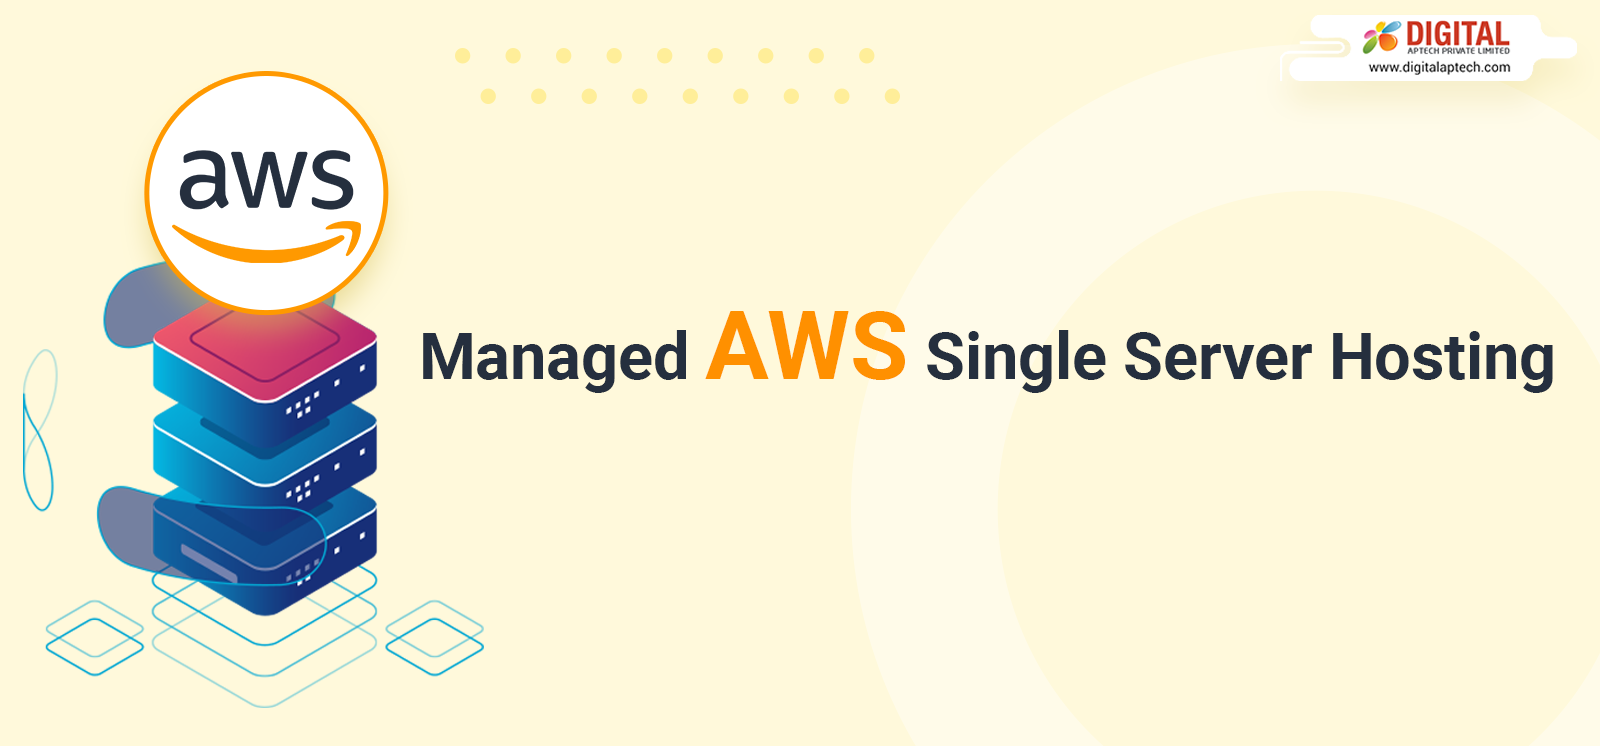 Managed AWS Single Serve Hosting By Digital Aptech Private Limited